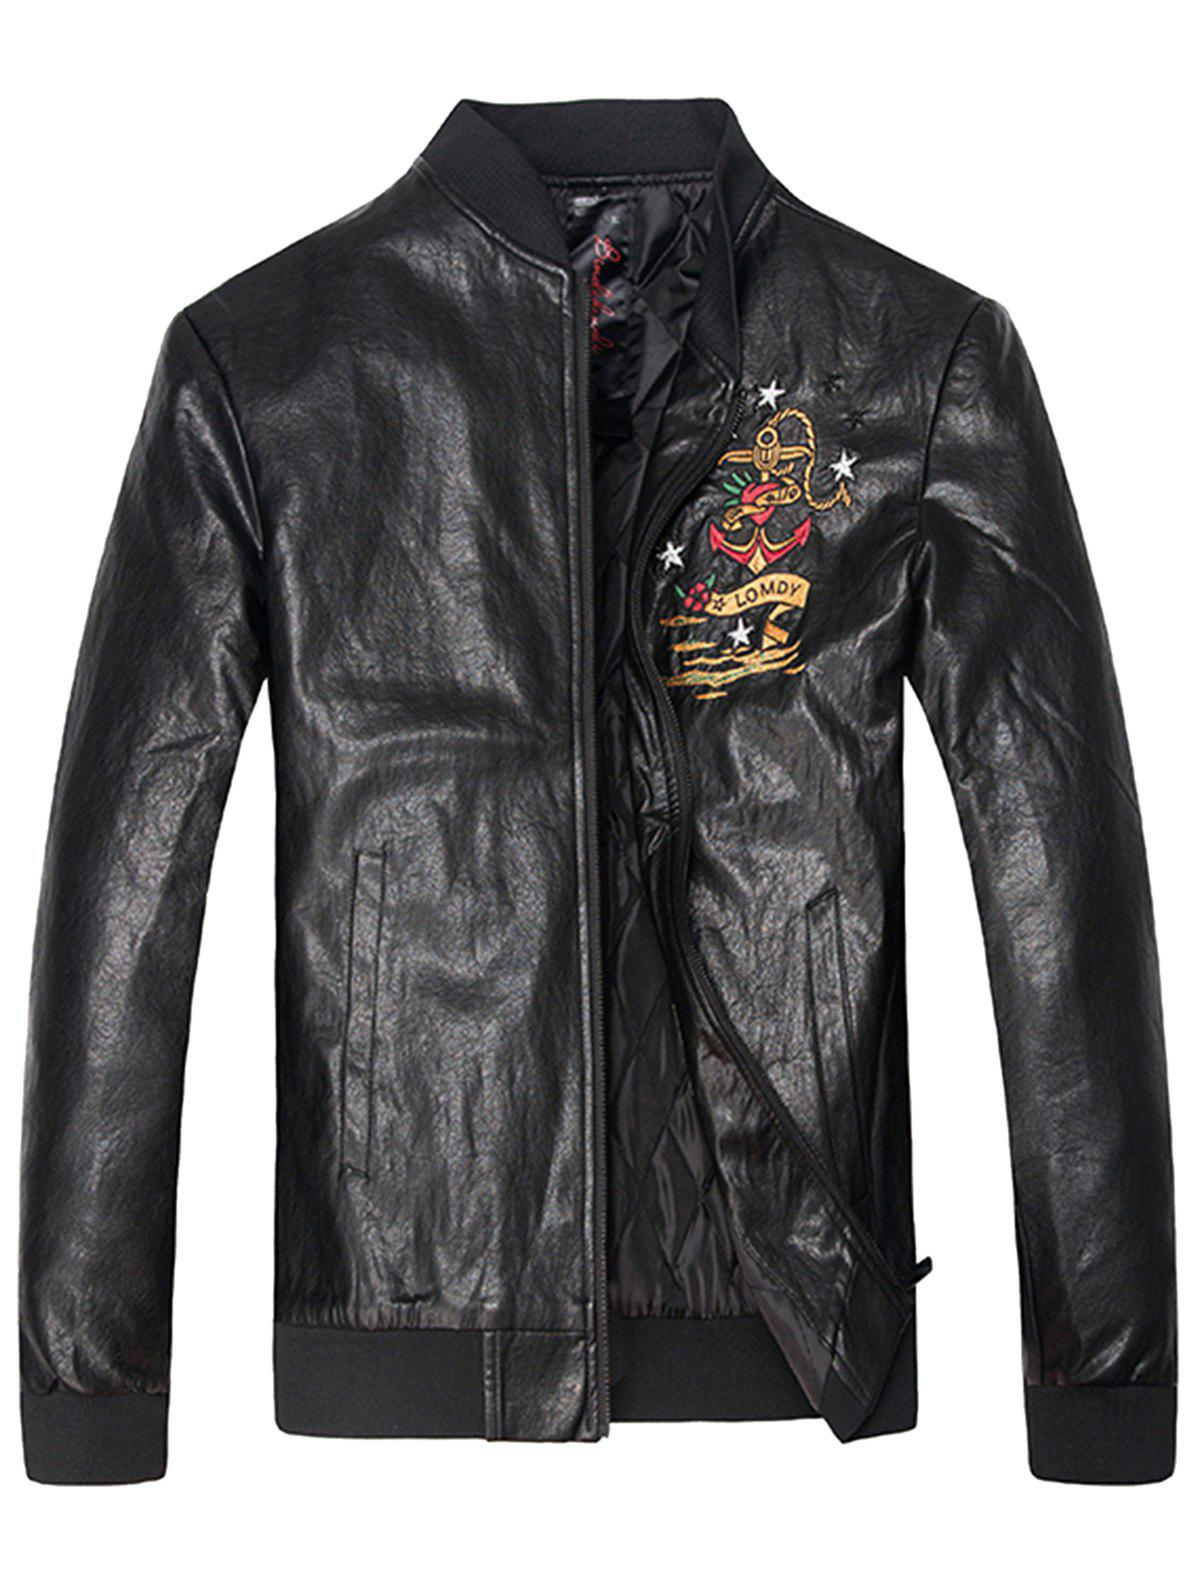 Embroidered PU Leather Zip Up Jacket sequin embroidered zip up jacket page 8